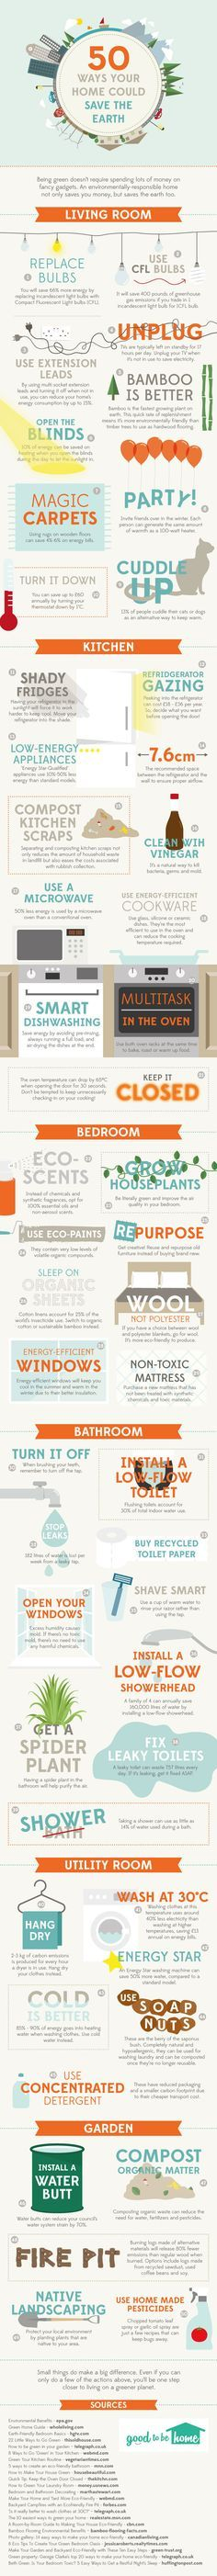 50 Cost Efficient Ways To Make Your Home More Eco Friendly